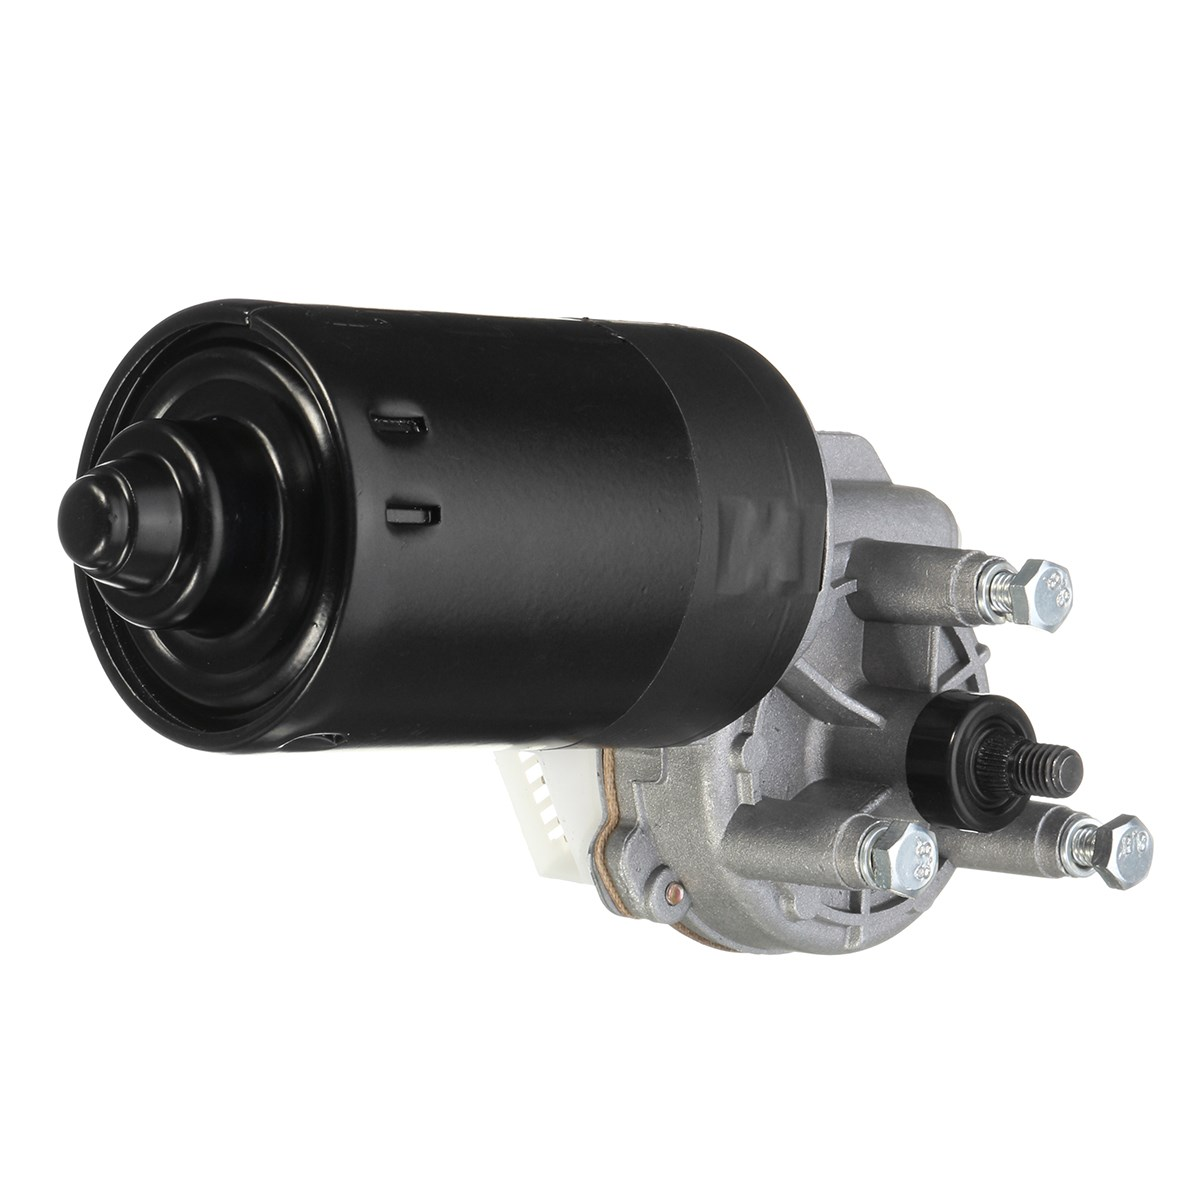 Front Windscreen Wiper Motor For Audi A3/Skoda Seat Passat/VW New Beetle Golf Bora(China (Mainland))